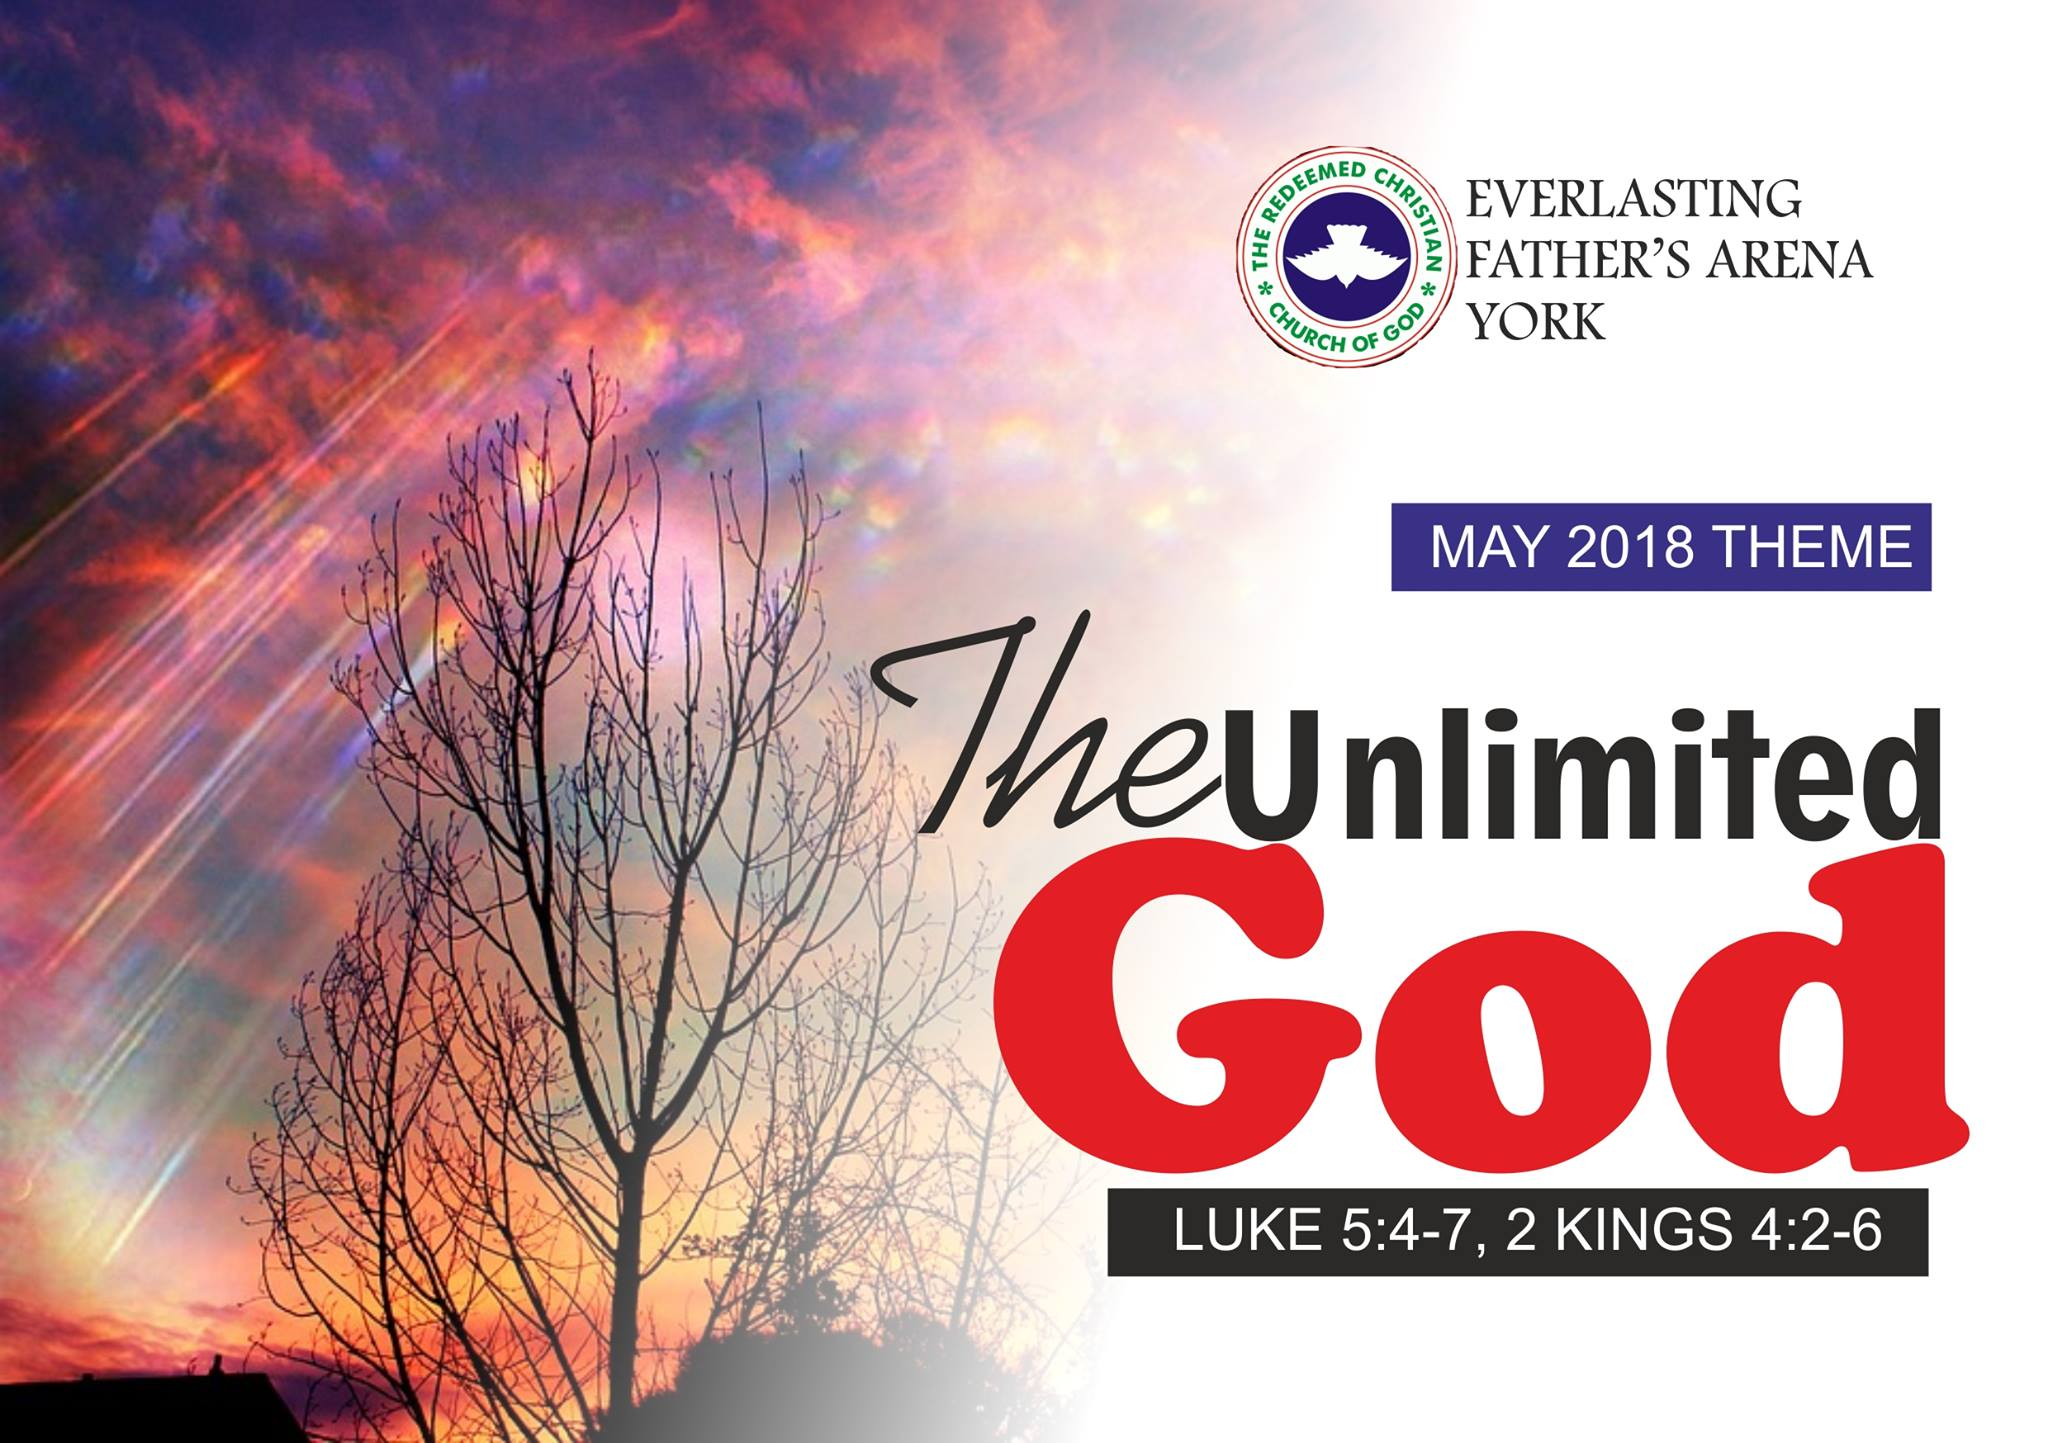 May 2018 Theme – The Unlimited God – Lk 5:4-7,2 Kgs 4:2-6